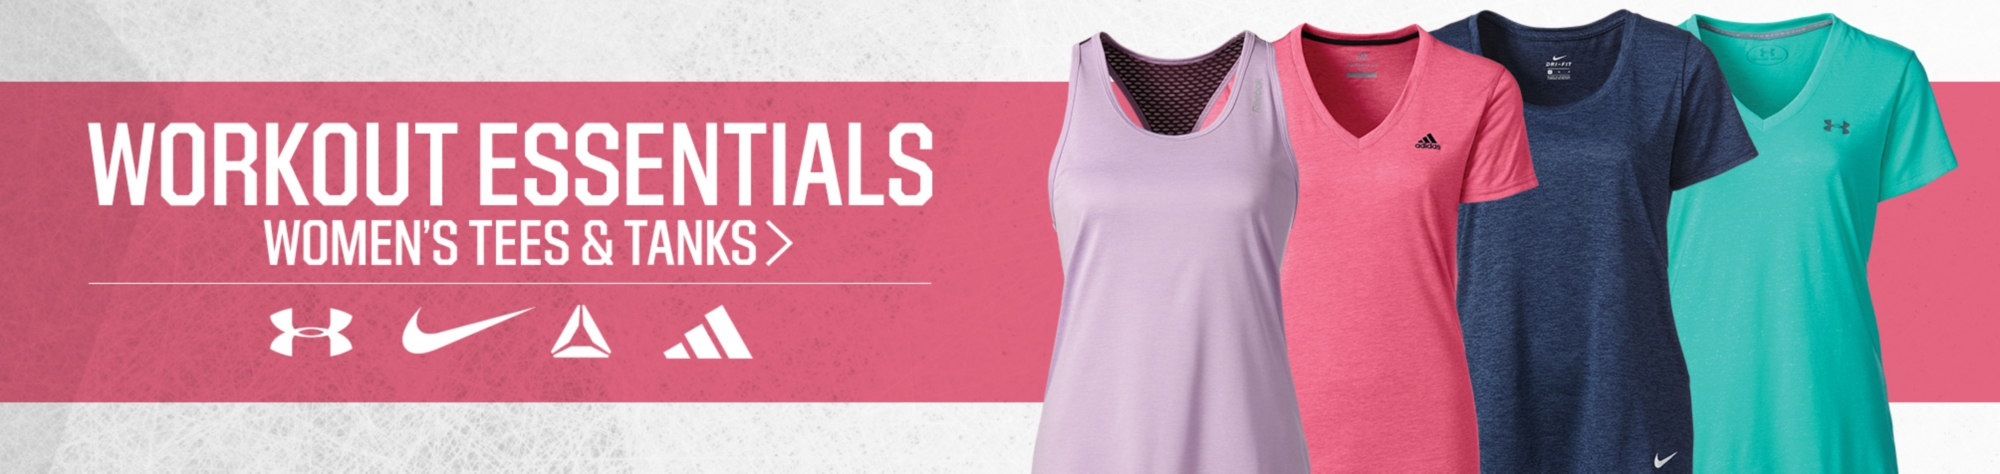 Workout Essentials - Women's Tees and Tanks